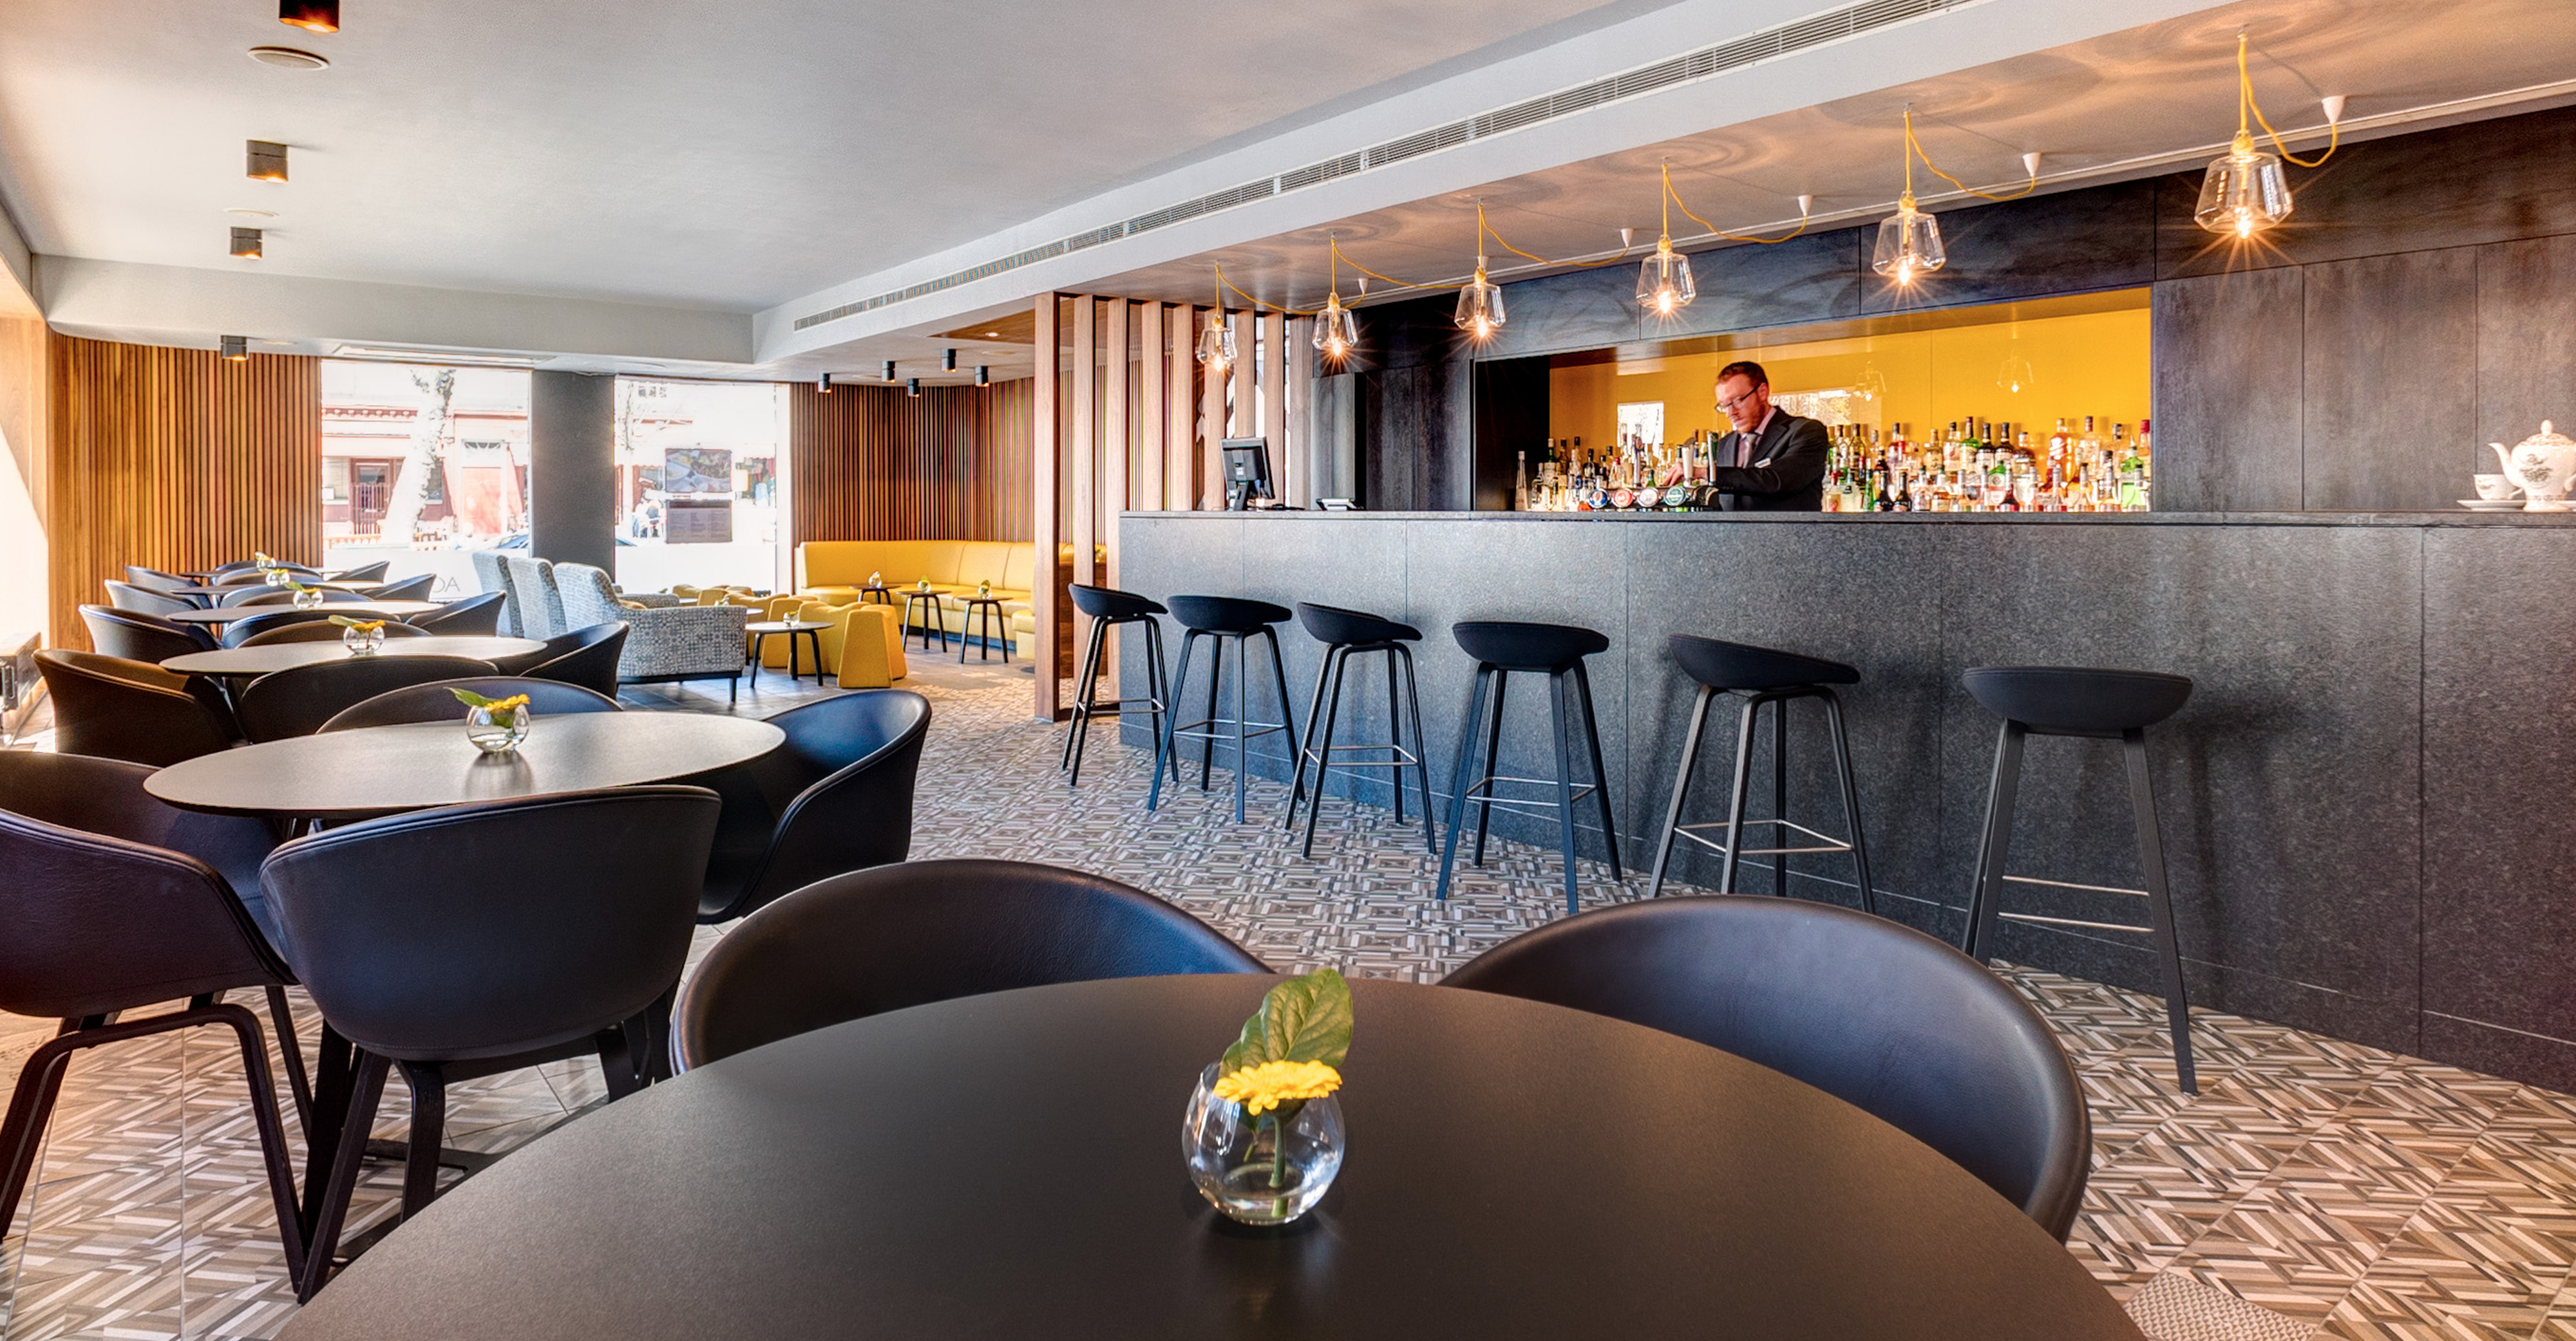 apex-hotel-edinburgh-moleta-munro-table-chairs-lights